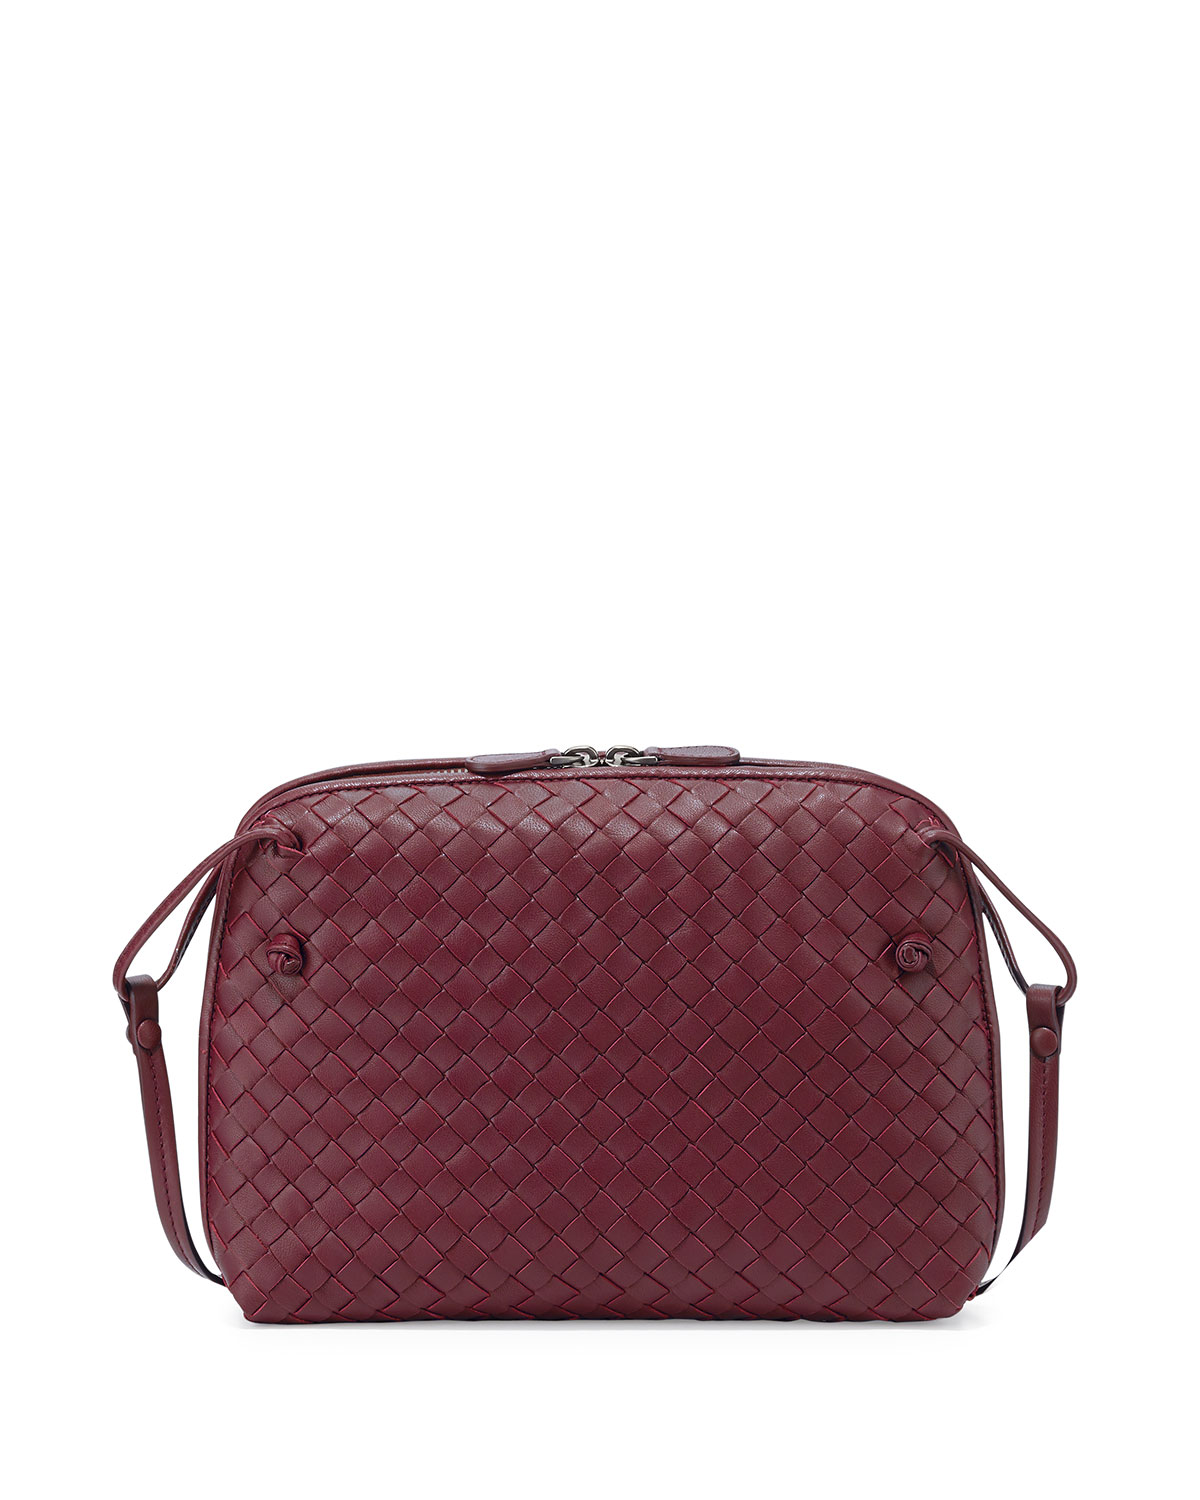 Bottega Veneta Nodini Messenger Bag  ad72063708673